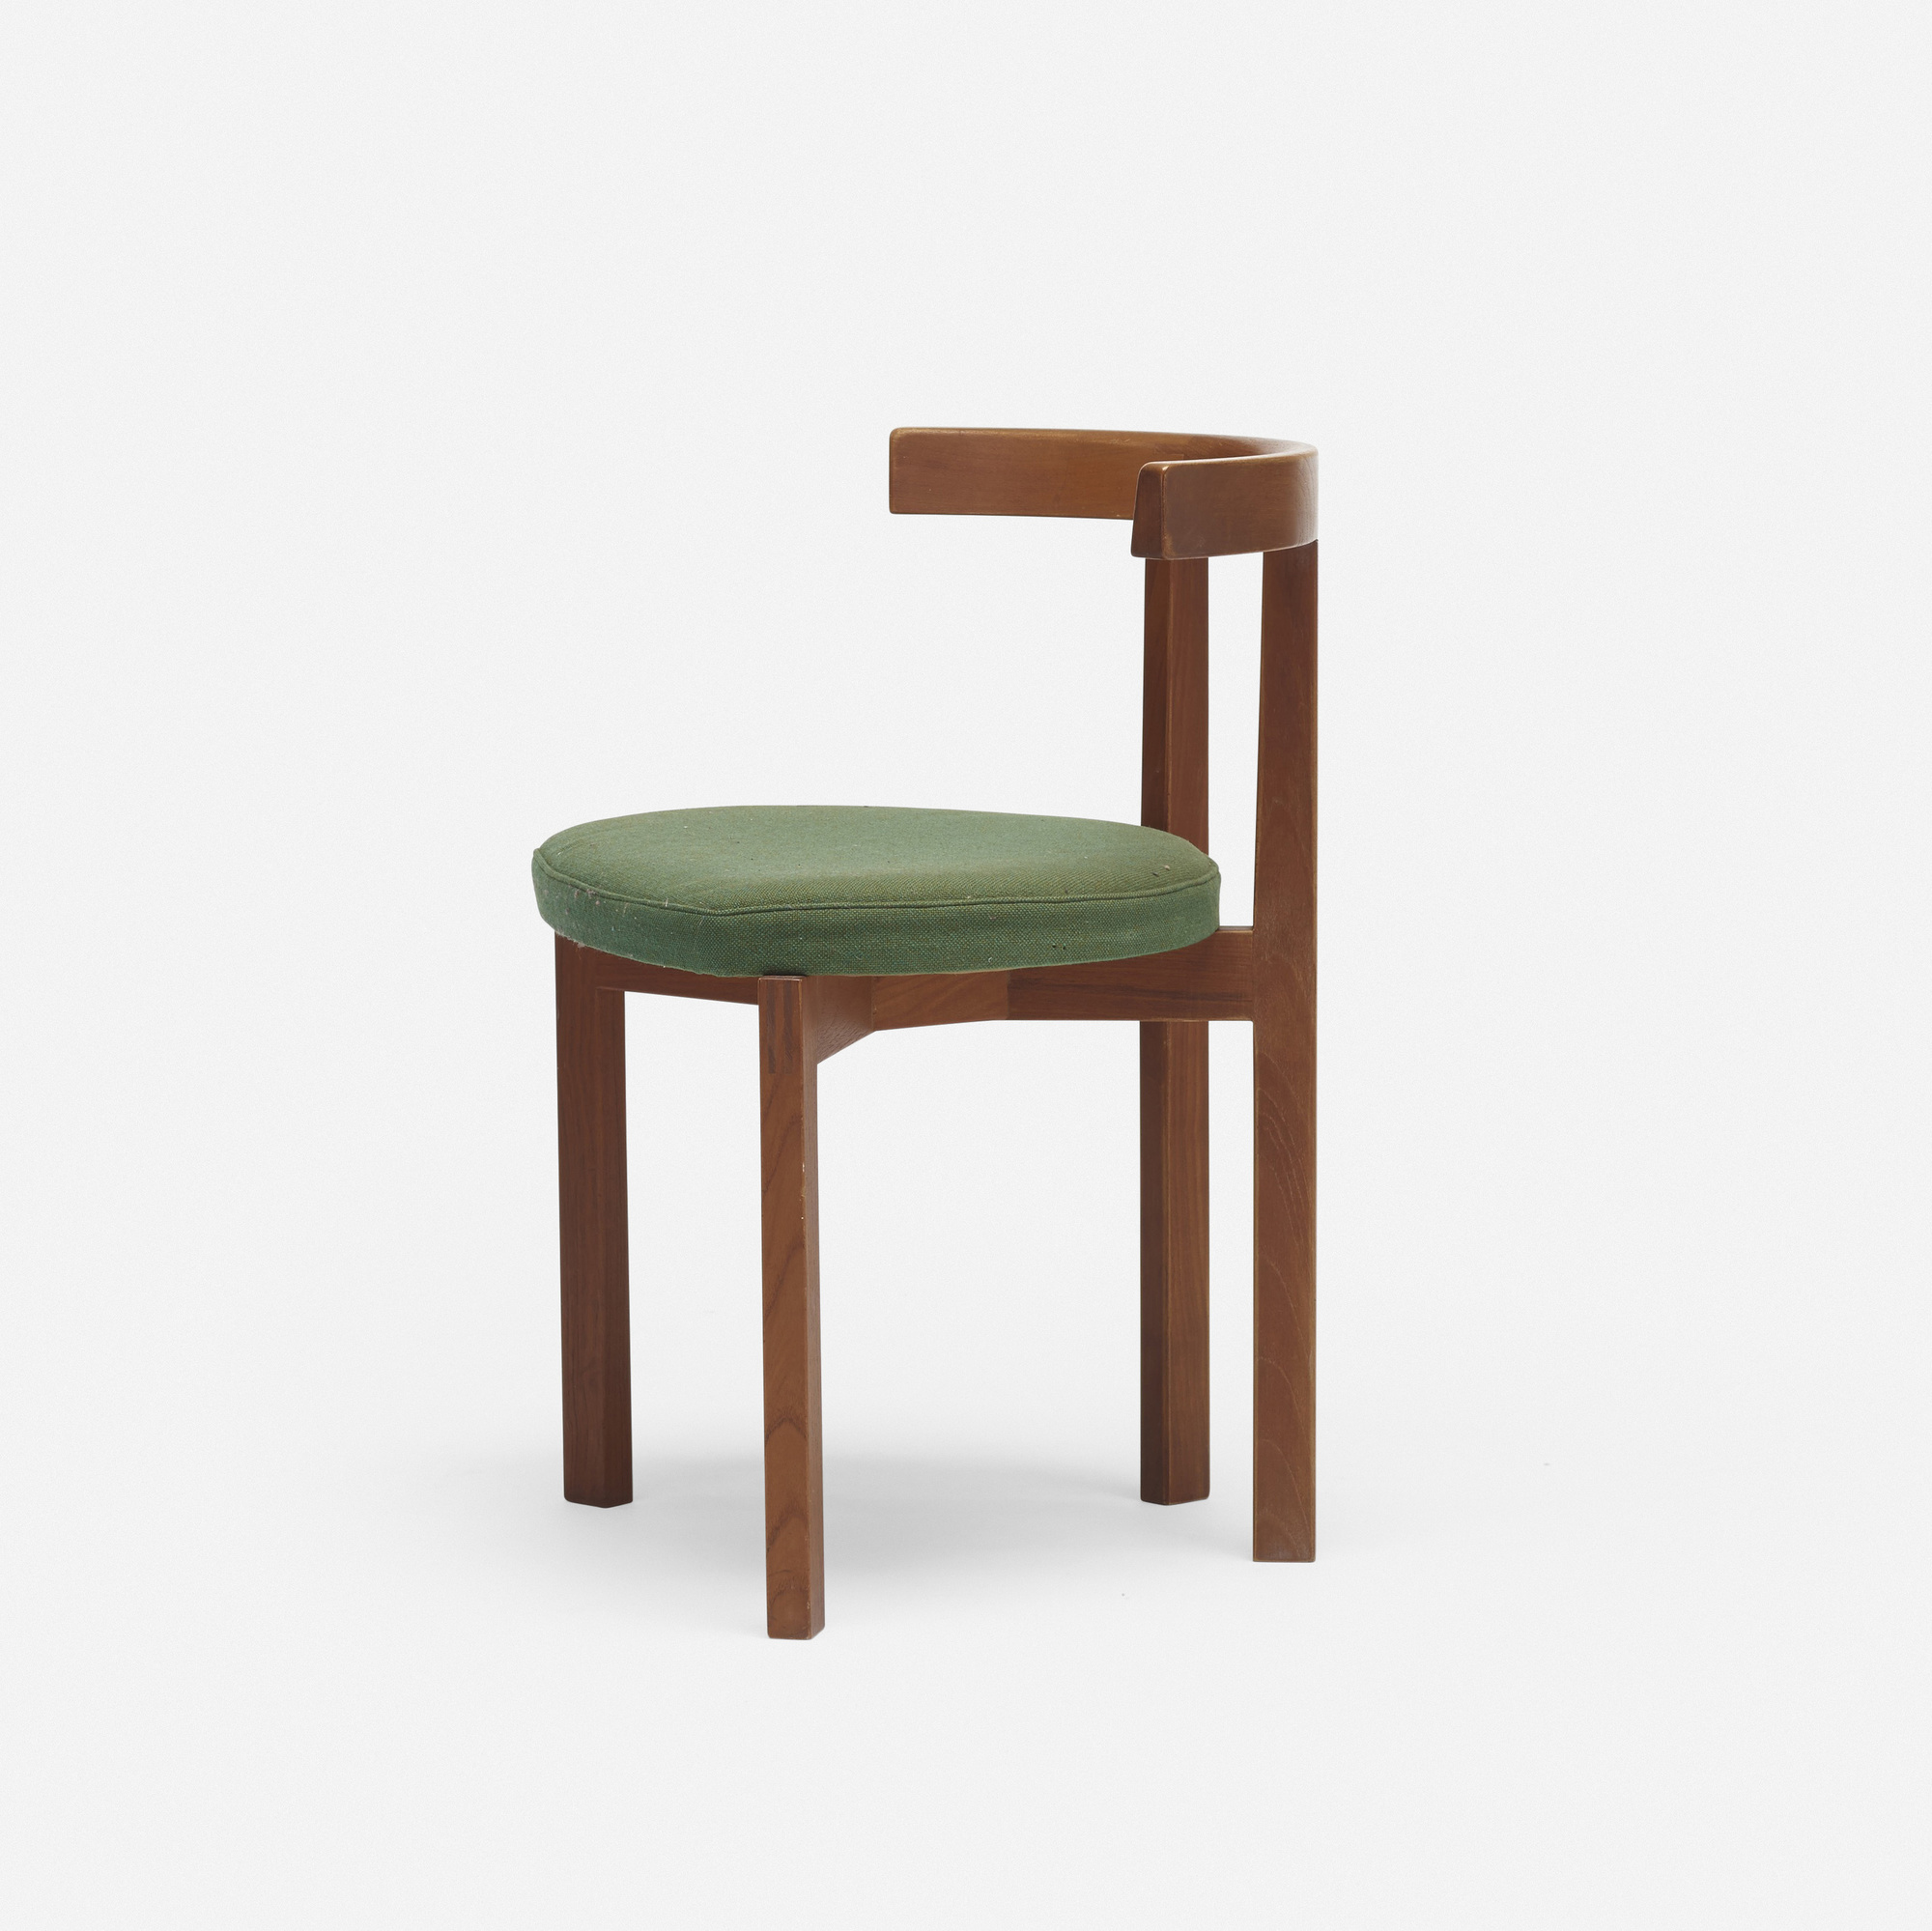 390: Inger Klingenberg / chair, model 193 (2 of 3)